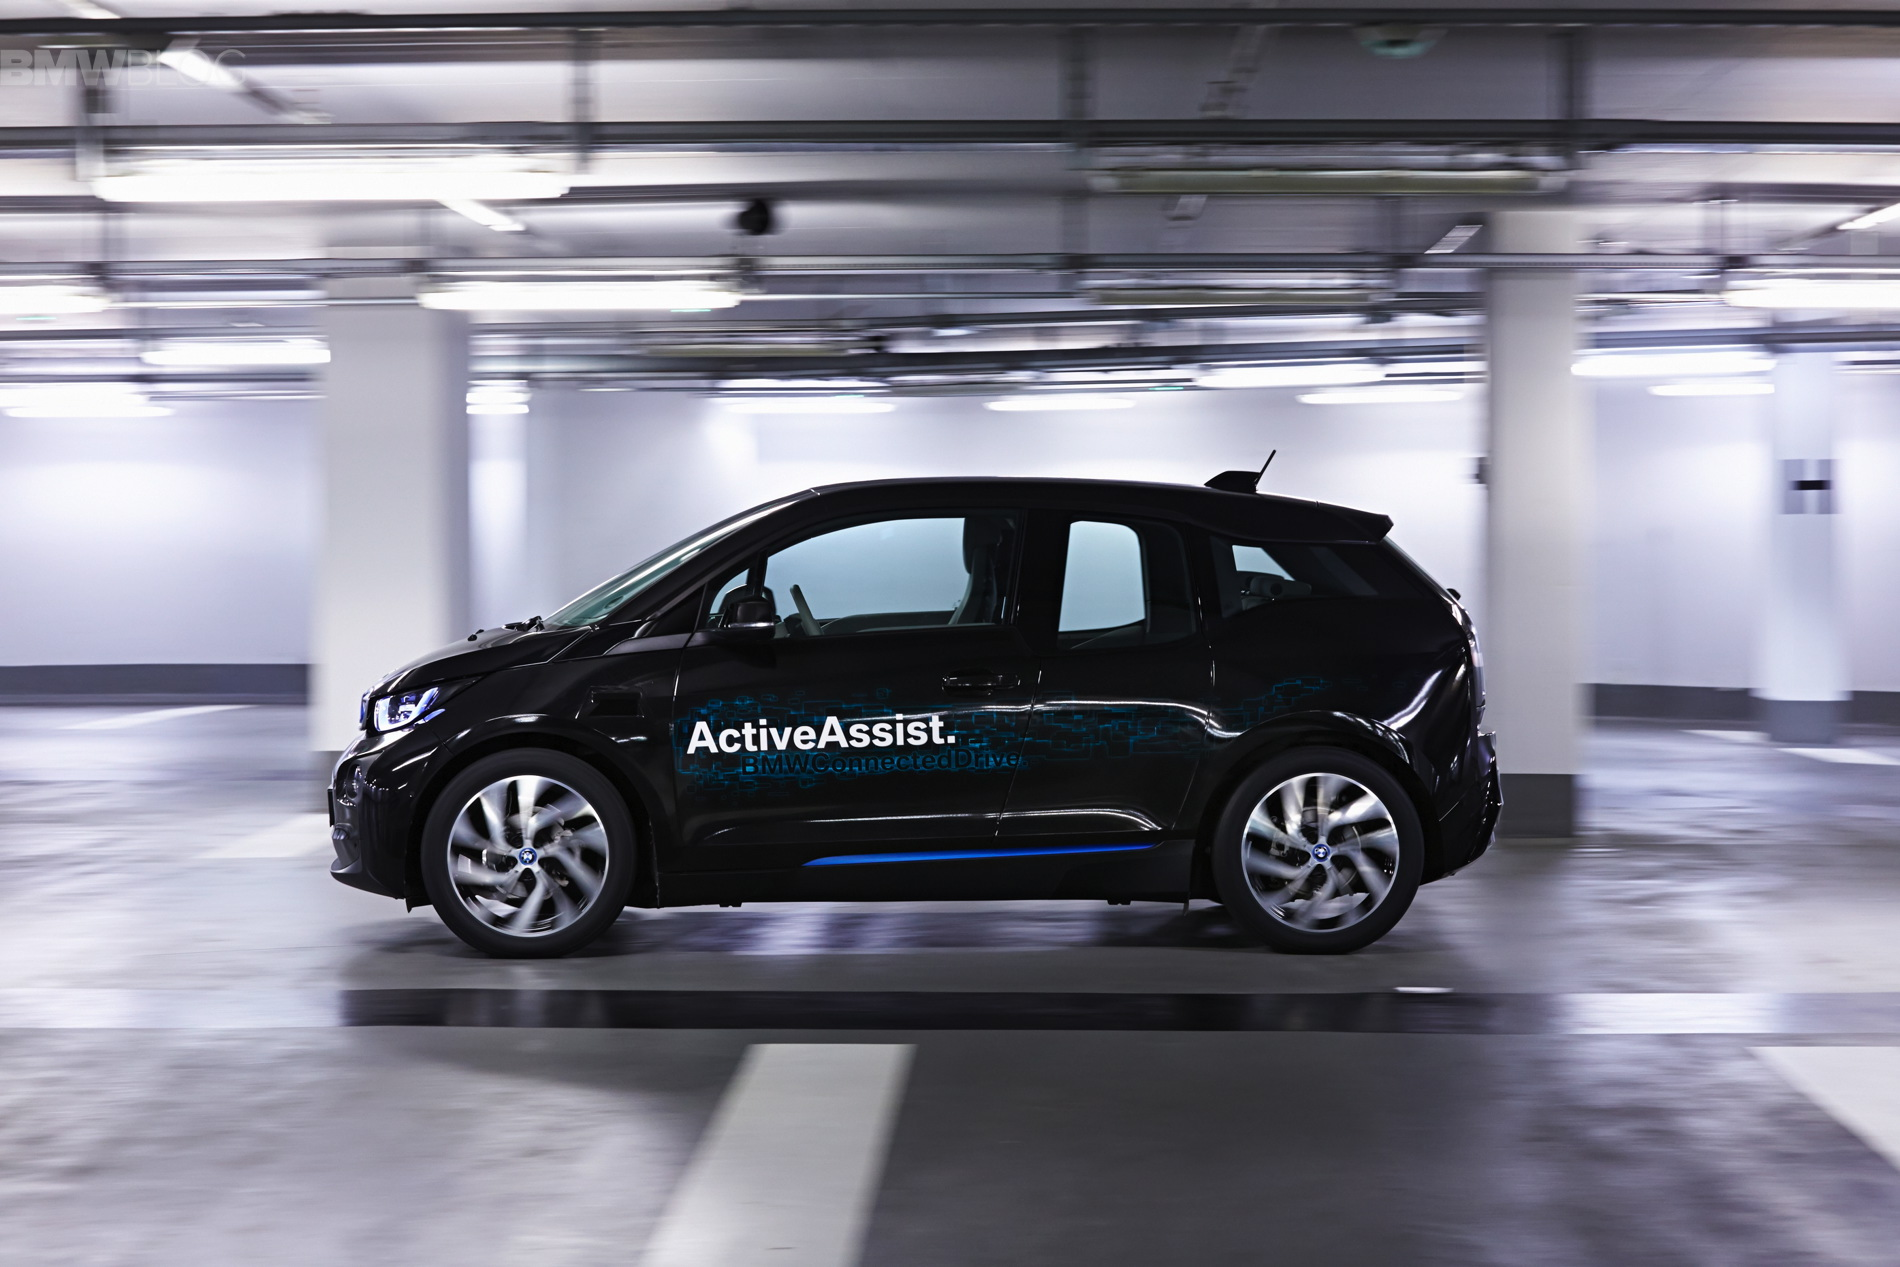 bmw fully automated parking 04